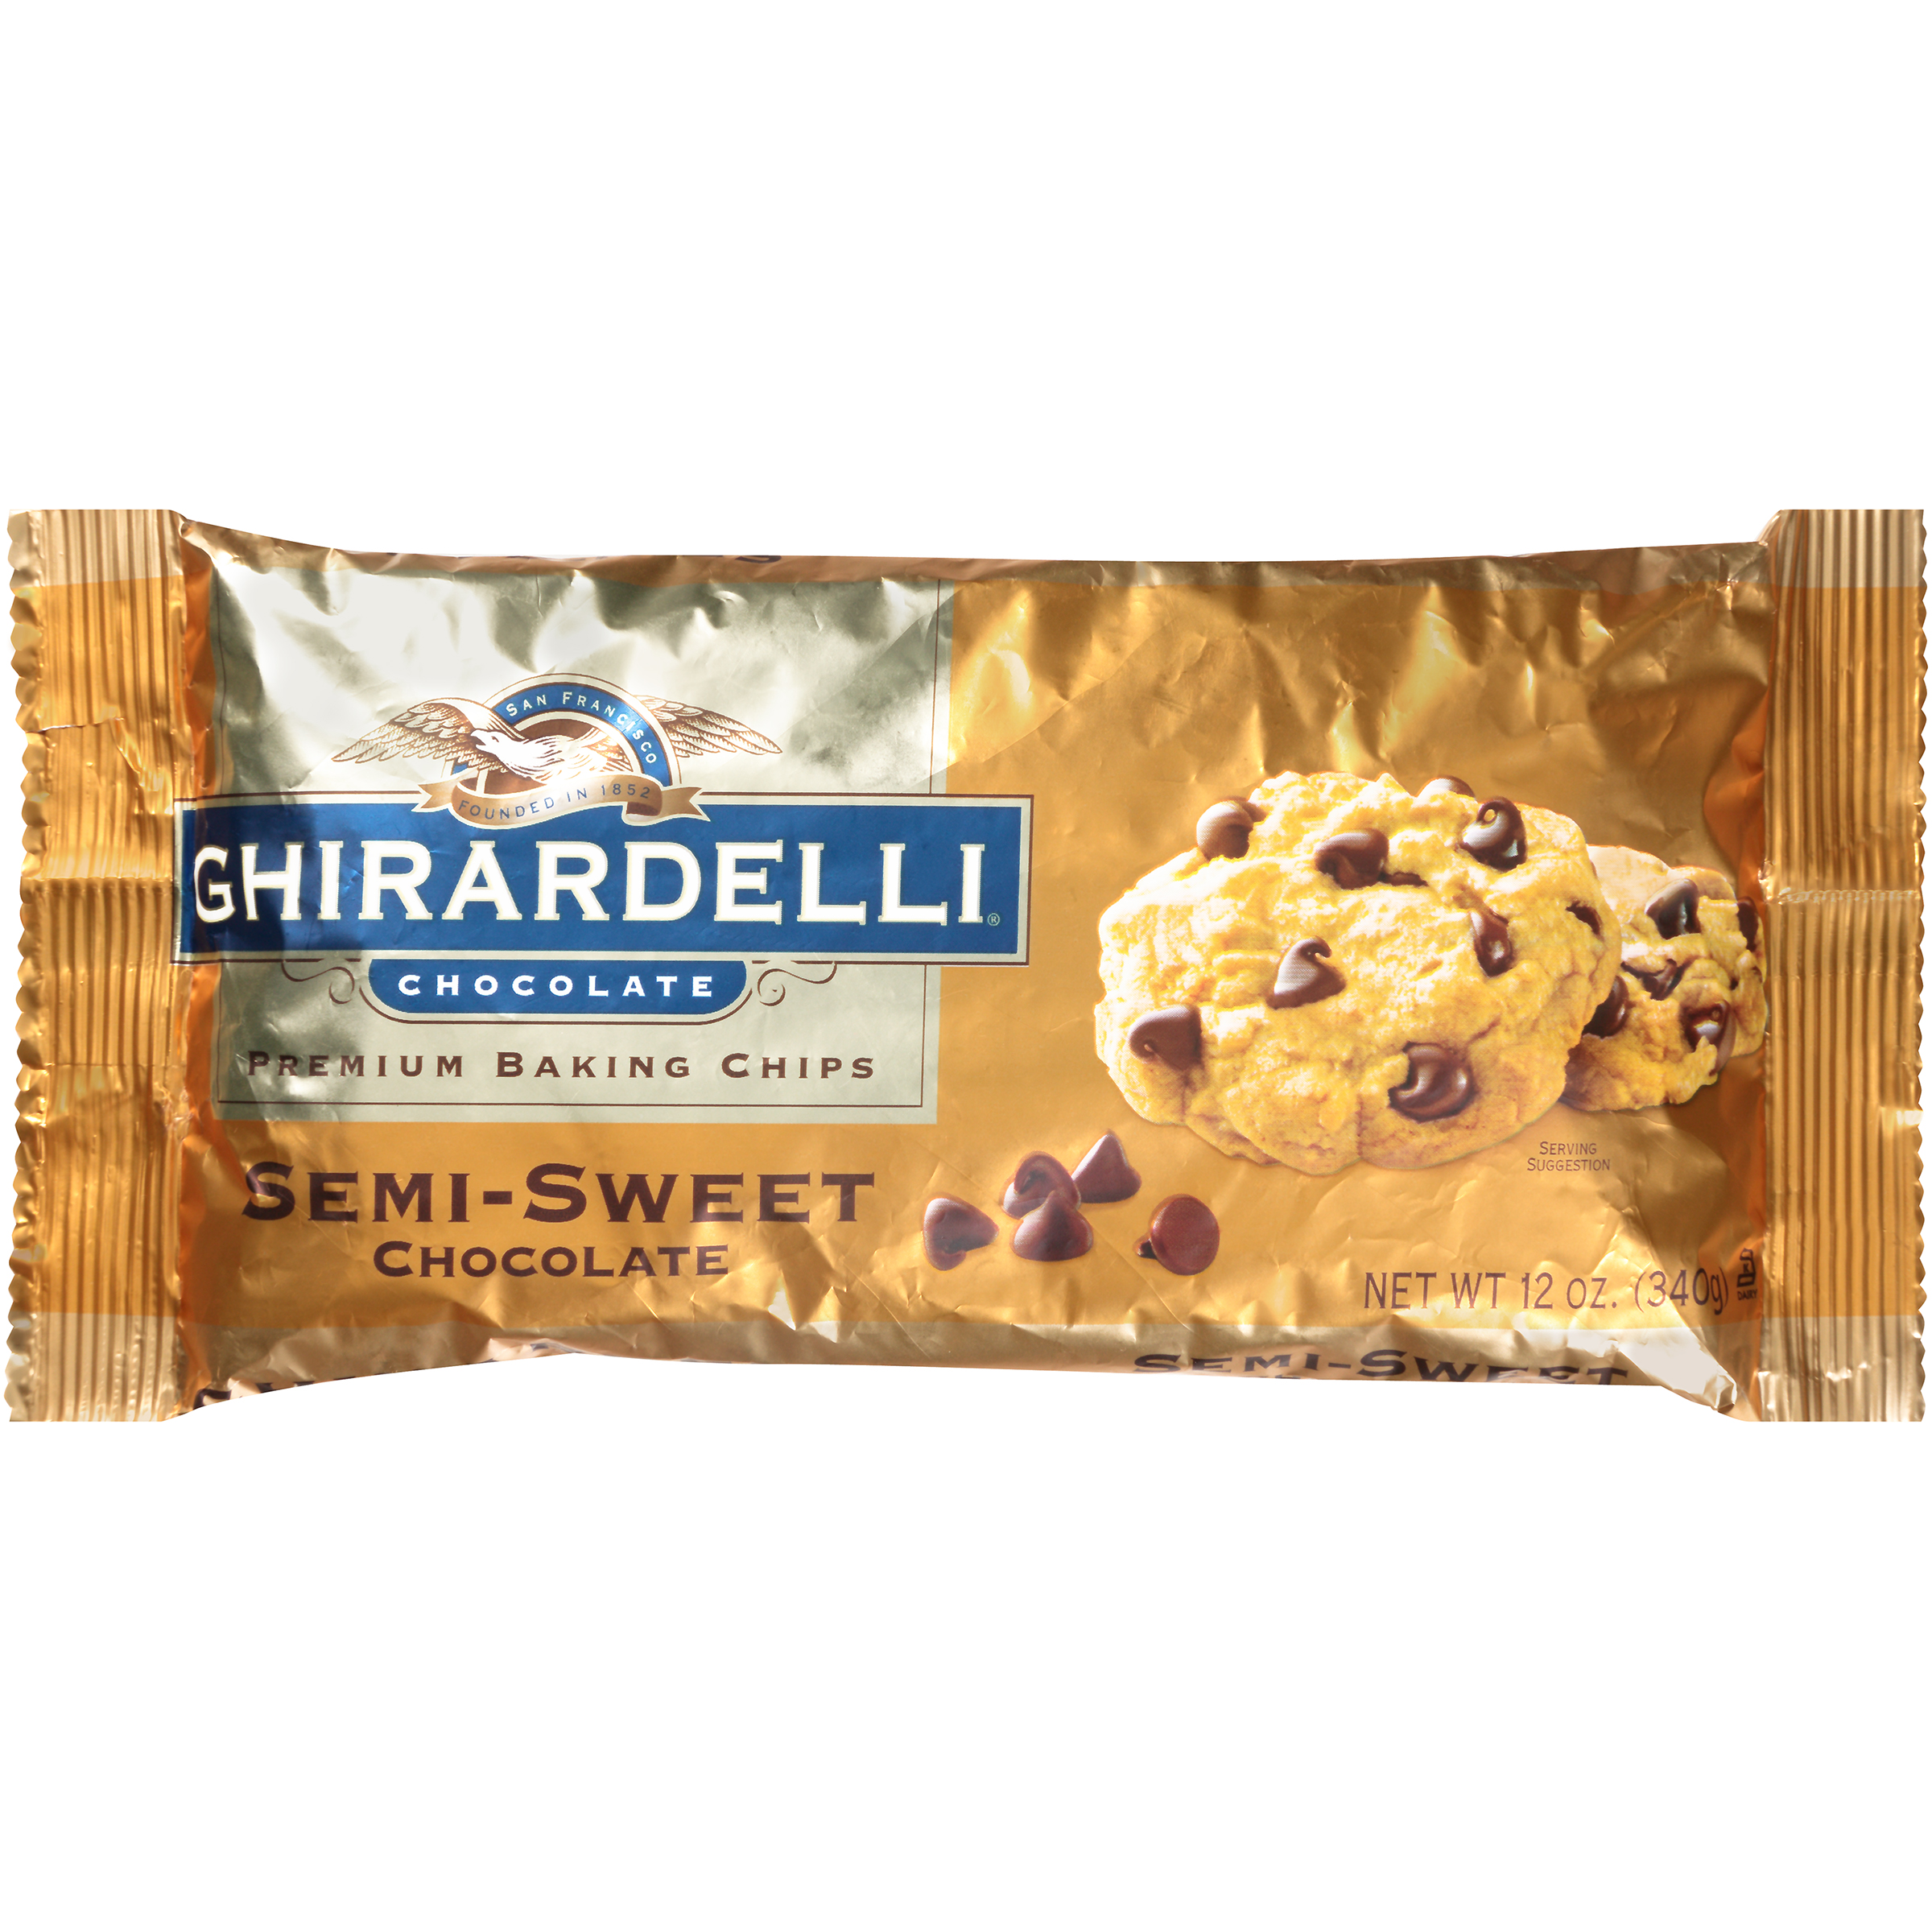 Ghirardelli Chocolate Semi-Sweet Chocolate Baking Chips, 12 oz